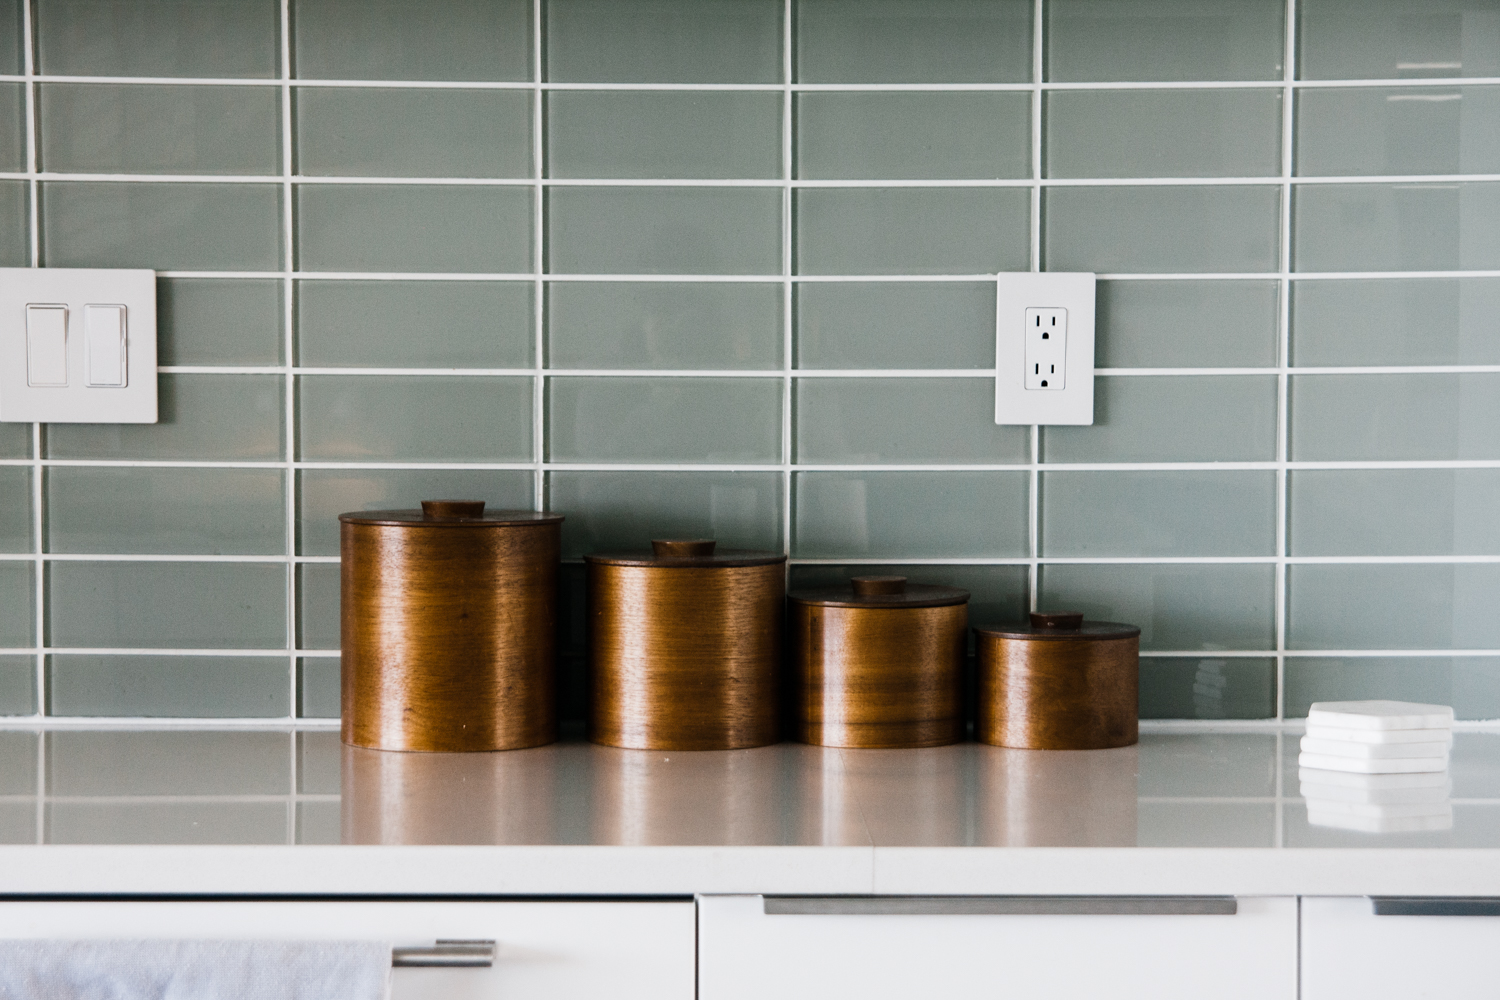 Daly has those same vintage canisters in her kitchen!